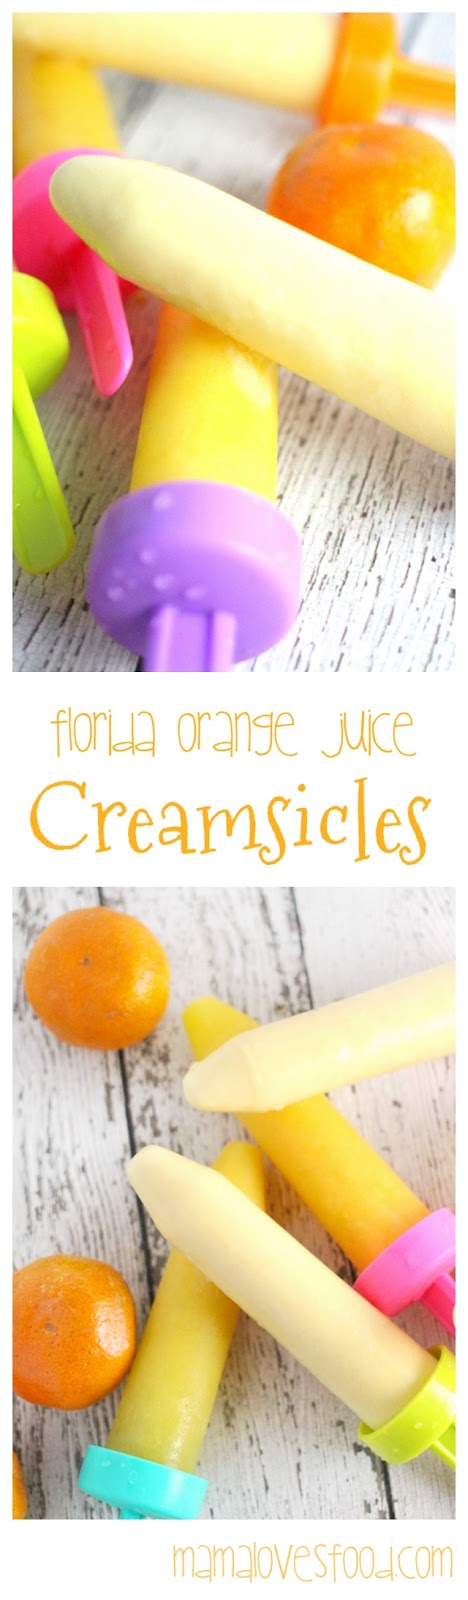 Orange Juice Creamsicle Recipe